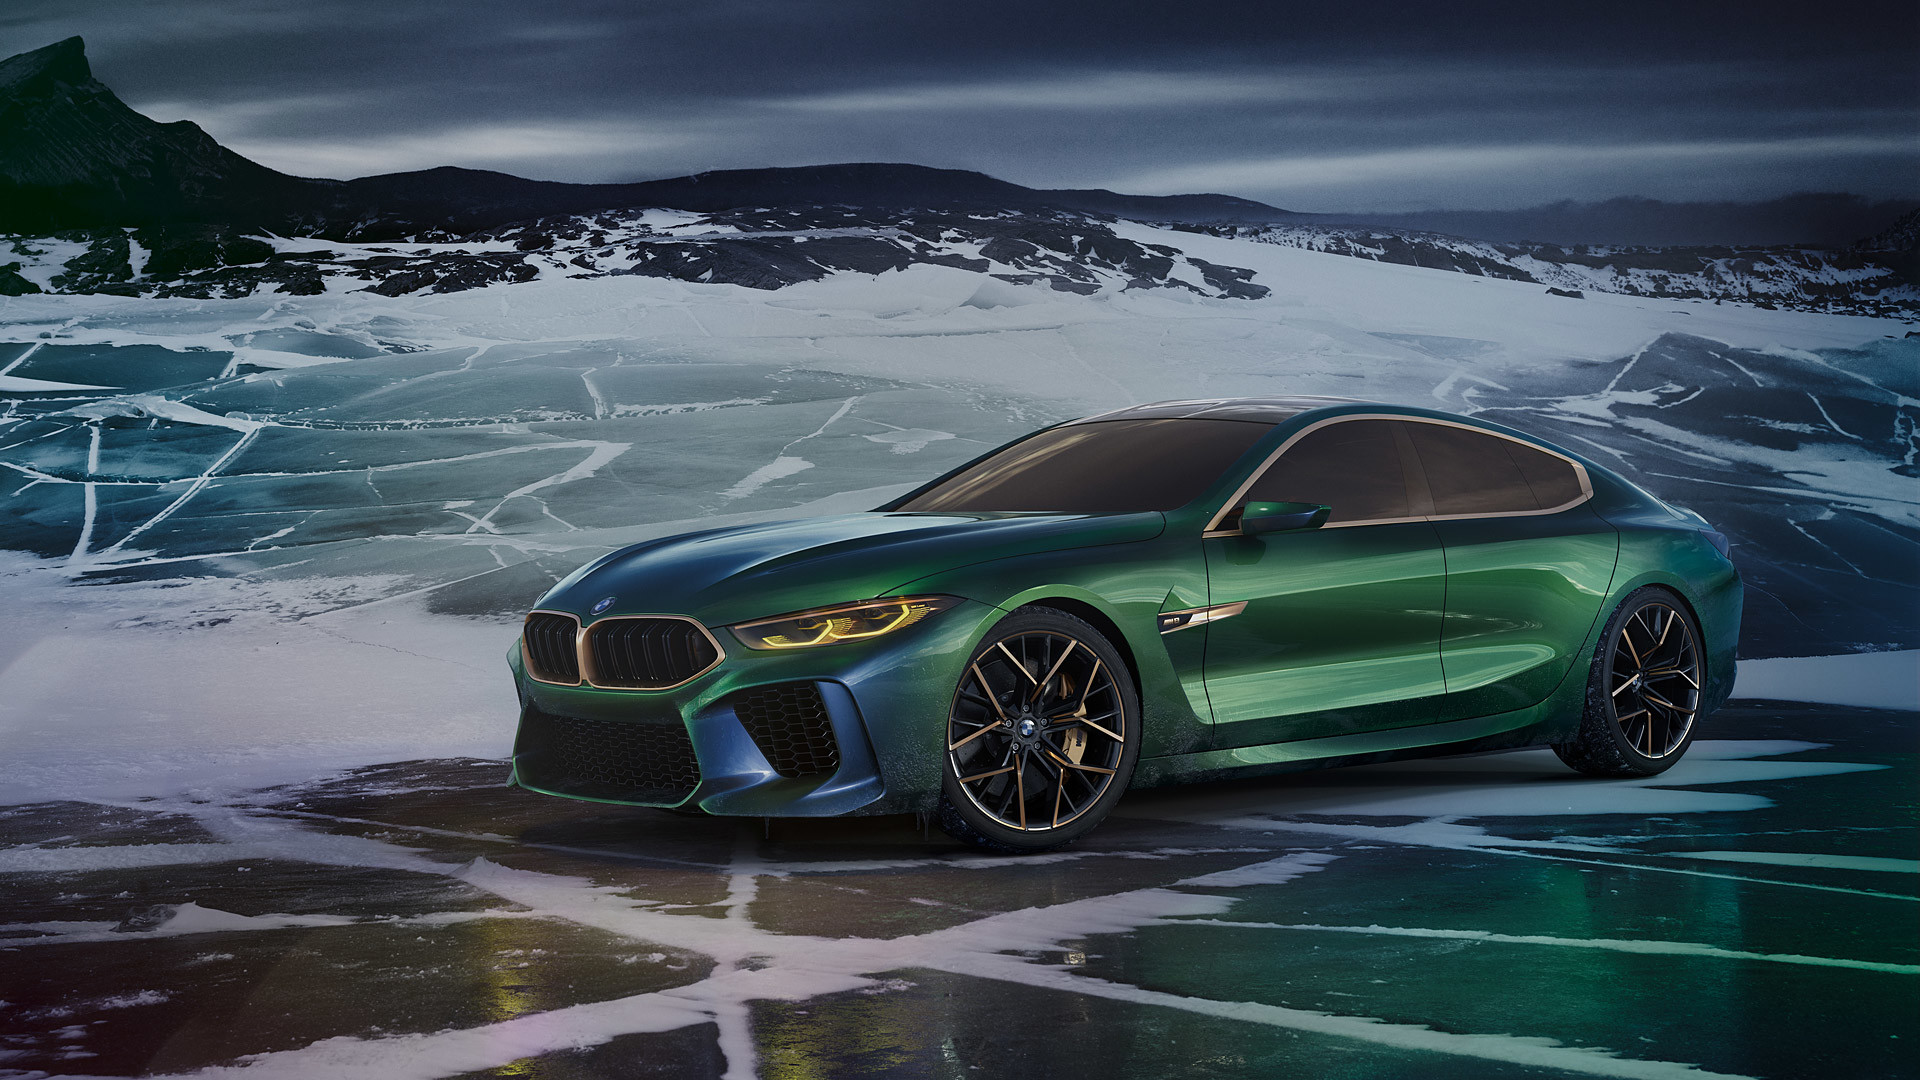 Res: 1920x1080, 2018 BMW M8 Gran Coupe Concept picture.